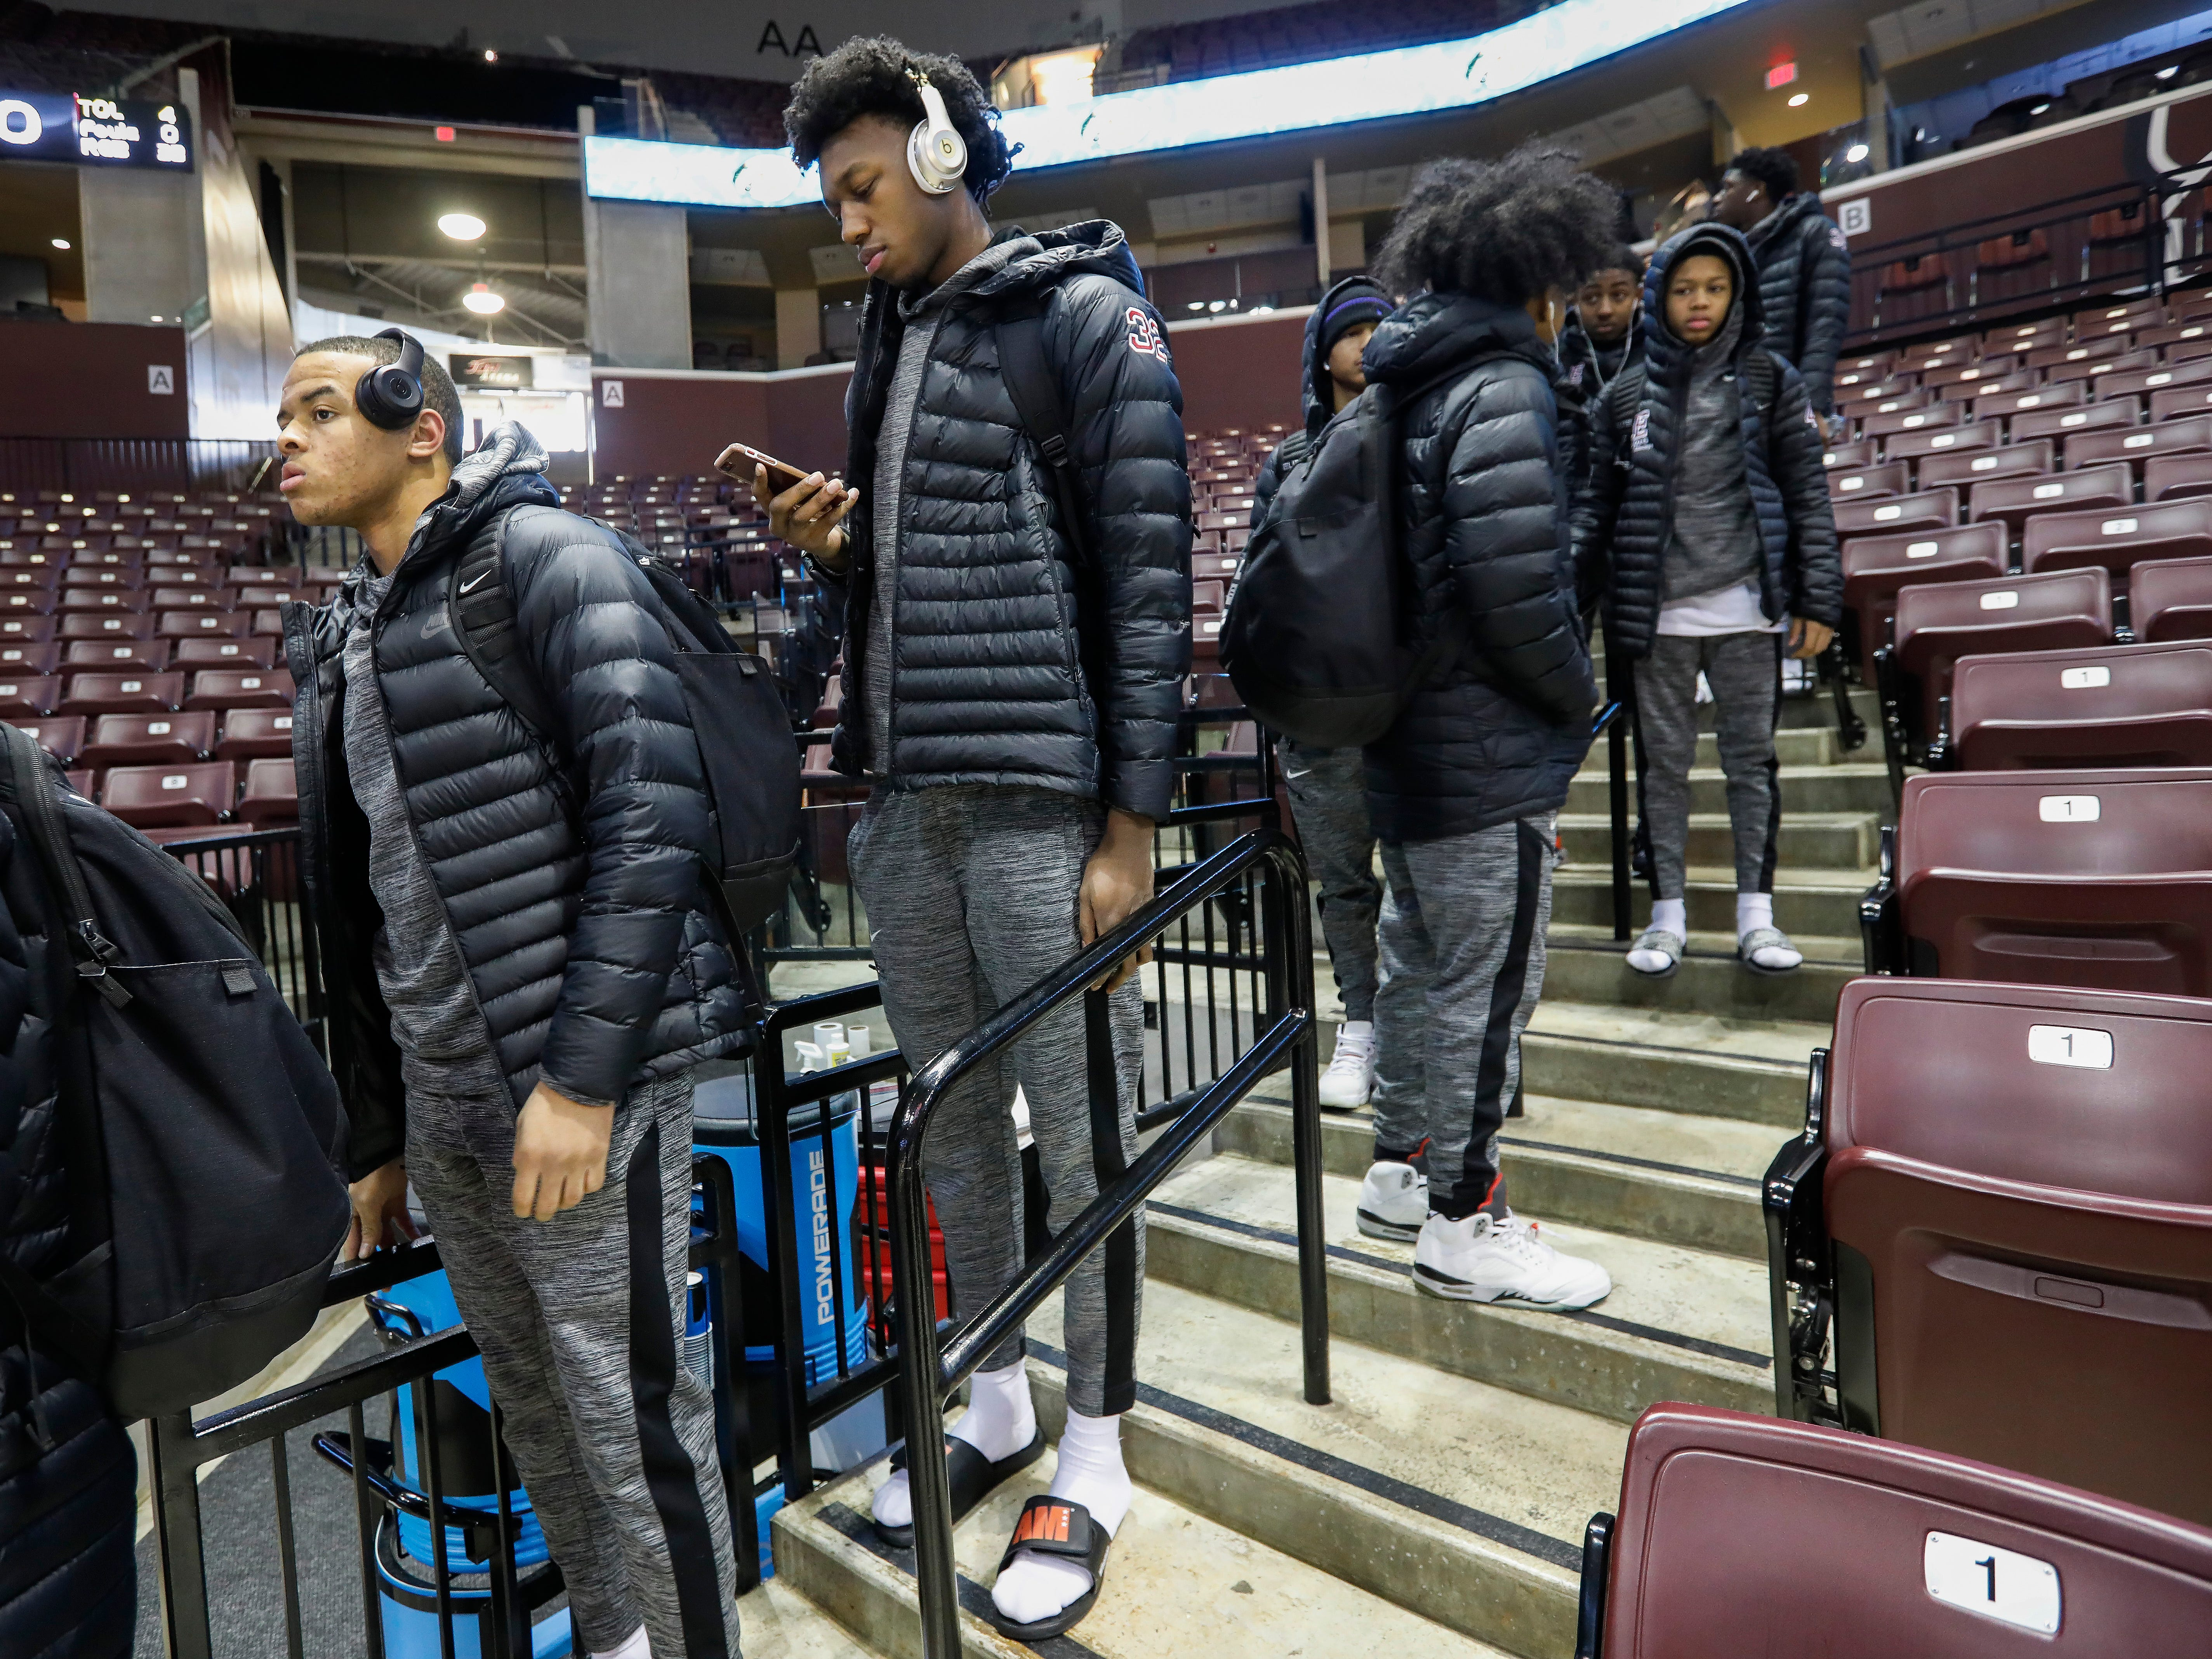 James Wiseman, center, of Memphis East High School, looks at his phone while waiting to go to the locker room at JQH Arena for the Bass Pro Shops Tournament of Champions on Thursday, Jan. 17, 2019.